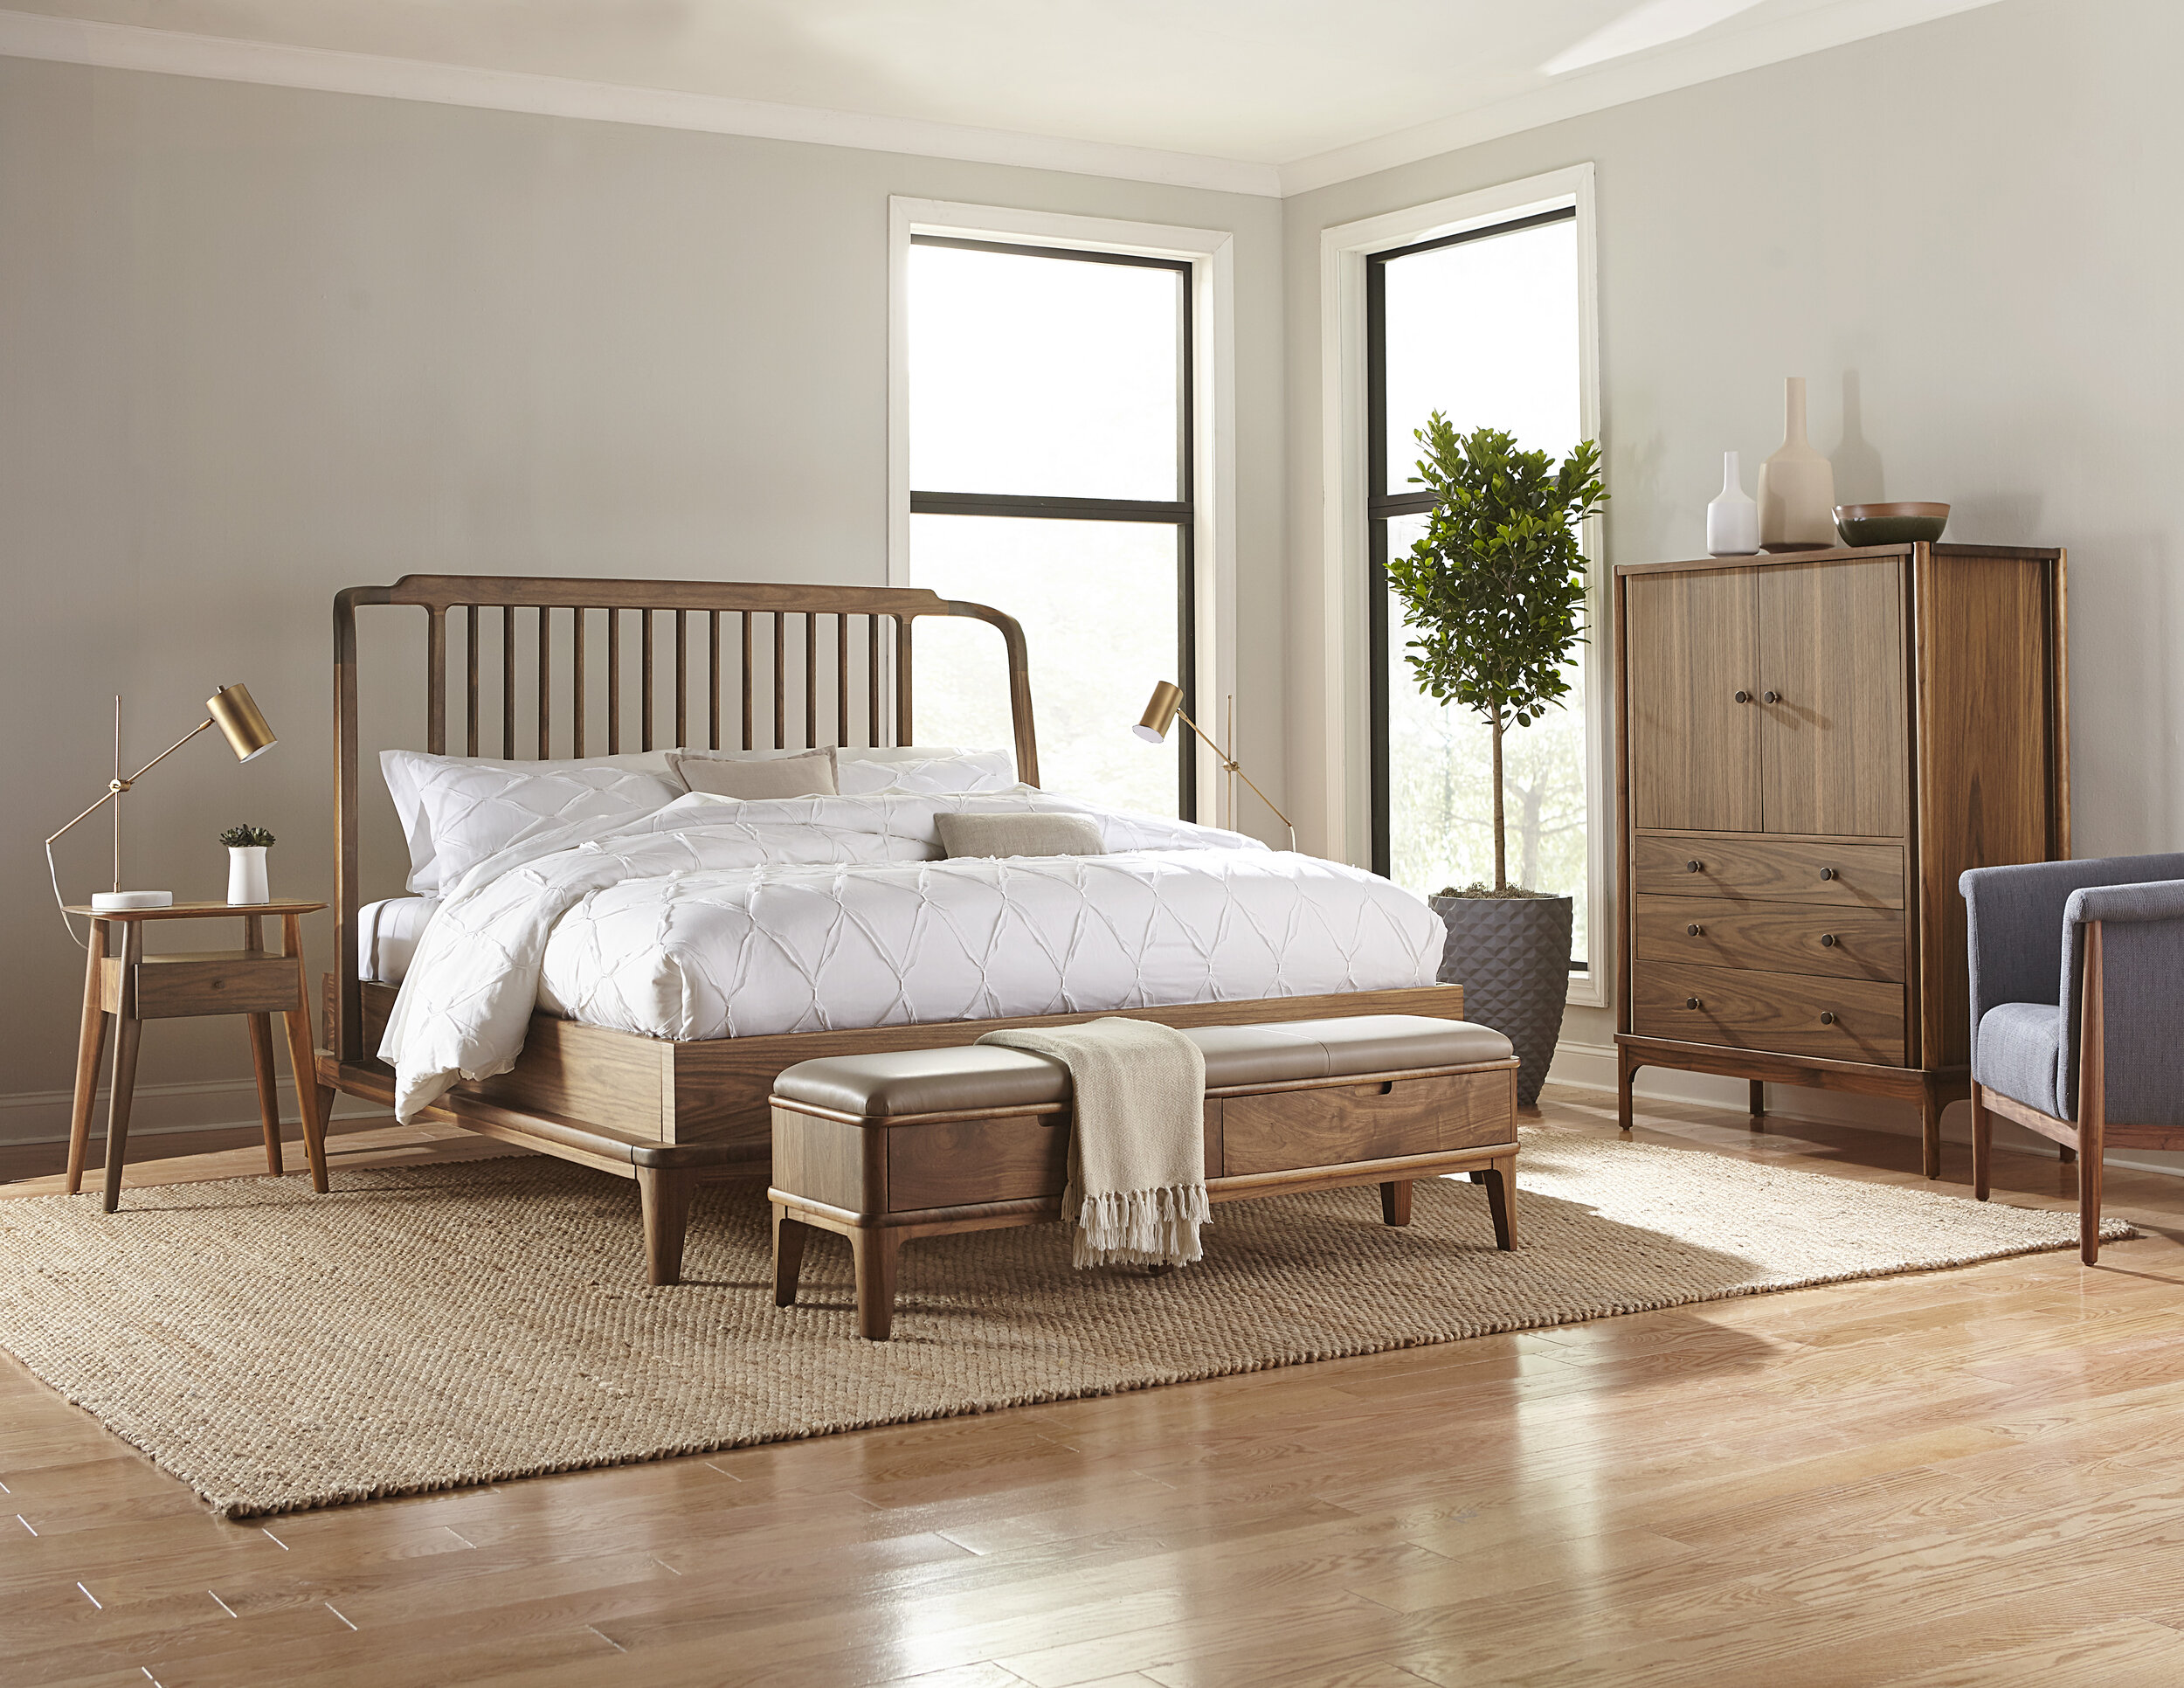 stickley RS9989_MT_WalnutGroveBedrooom2_w_mc_9910-9914-hpr.jpg